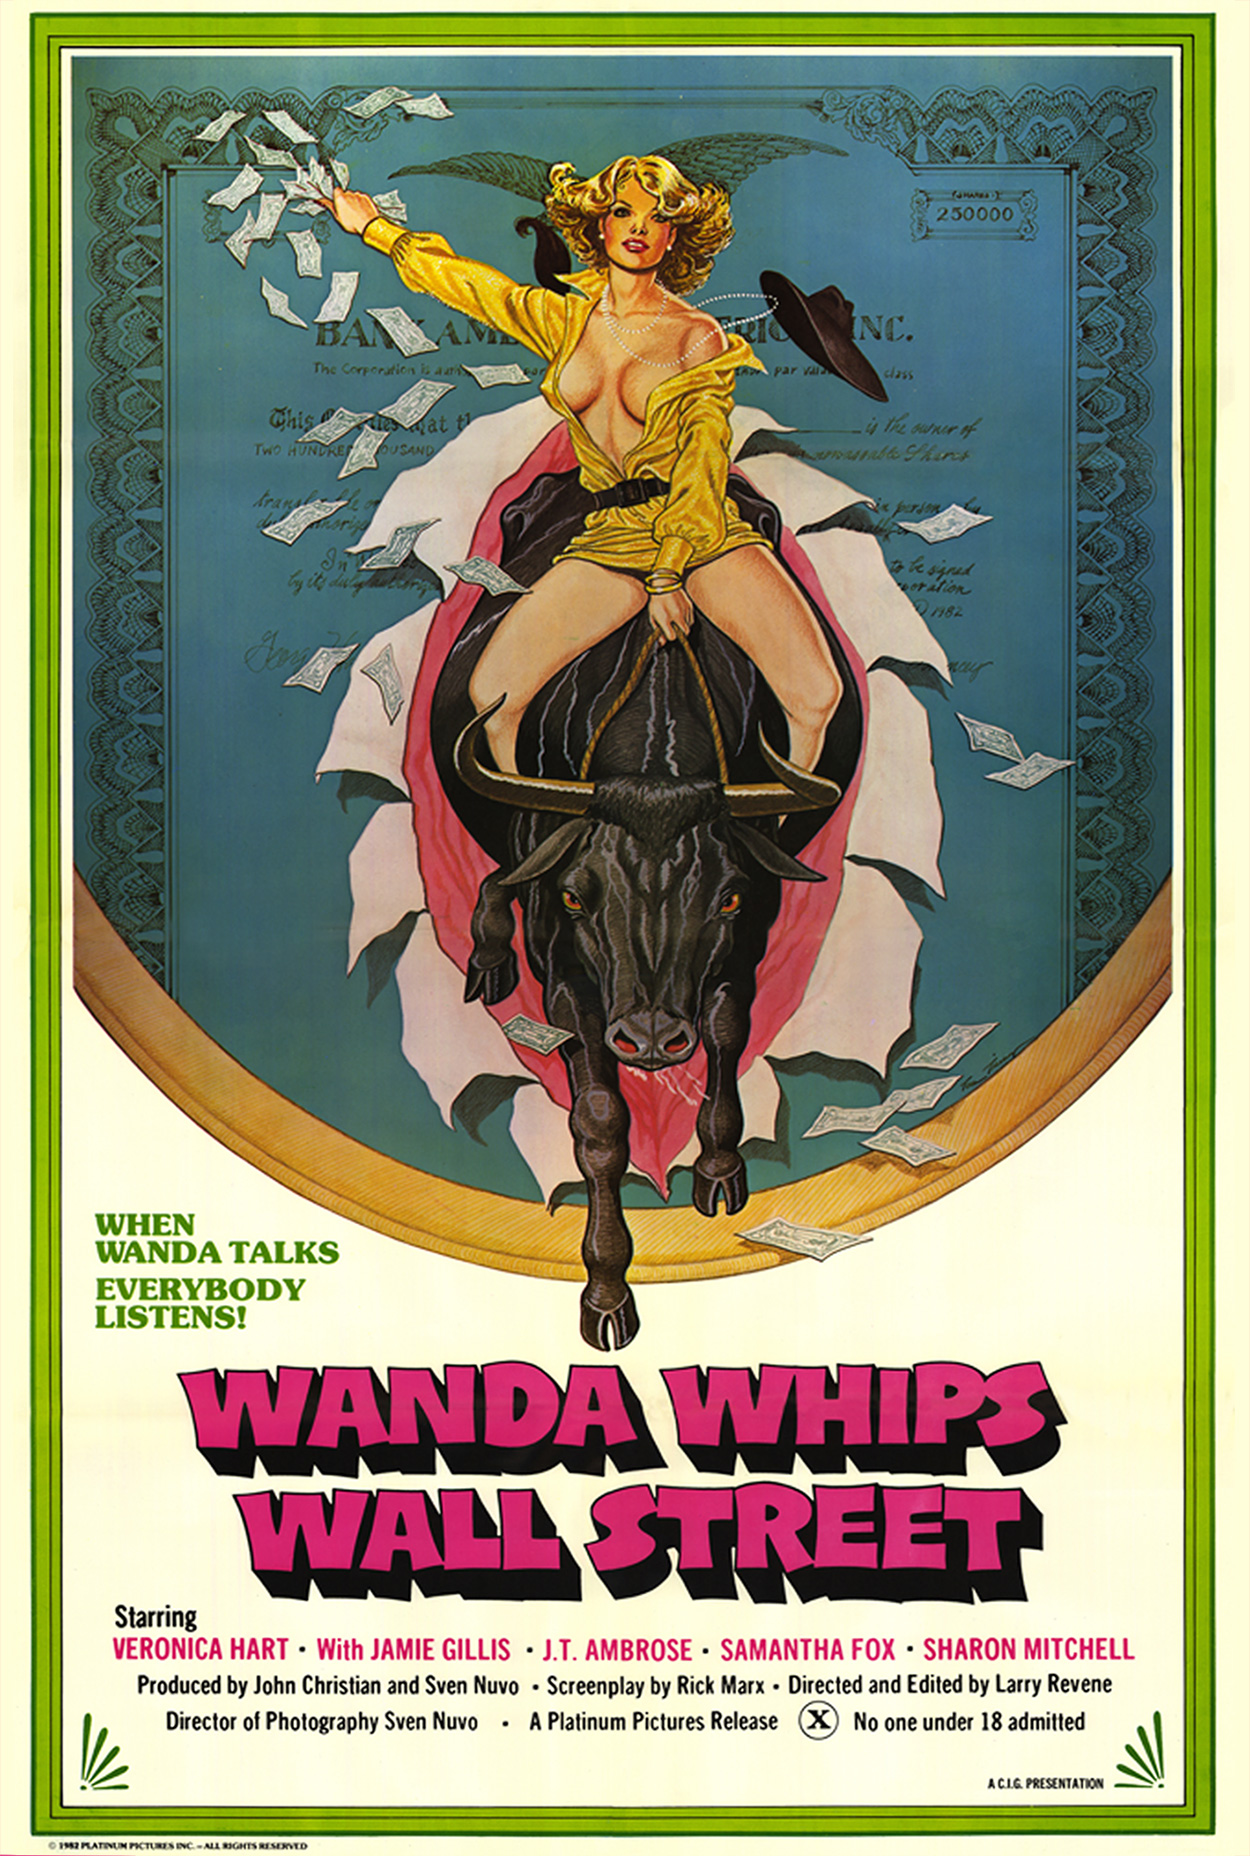 Wand Whips Wall Street, Original Theatrical Poster. ©Distribpix Inc.